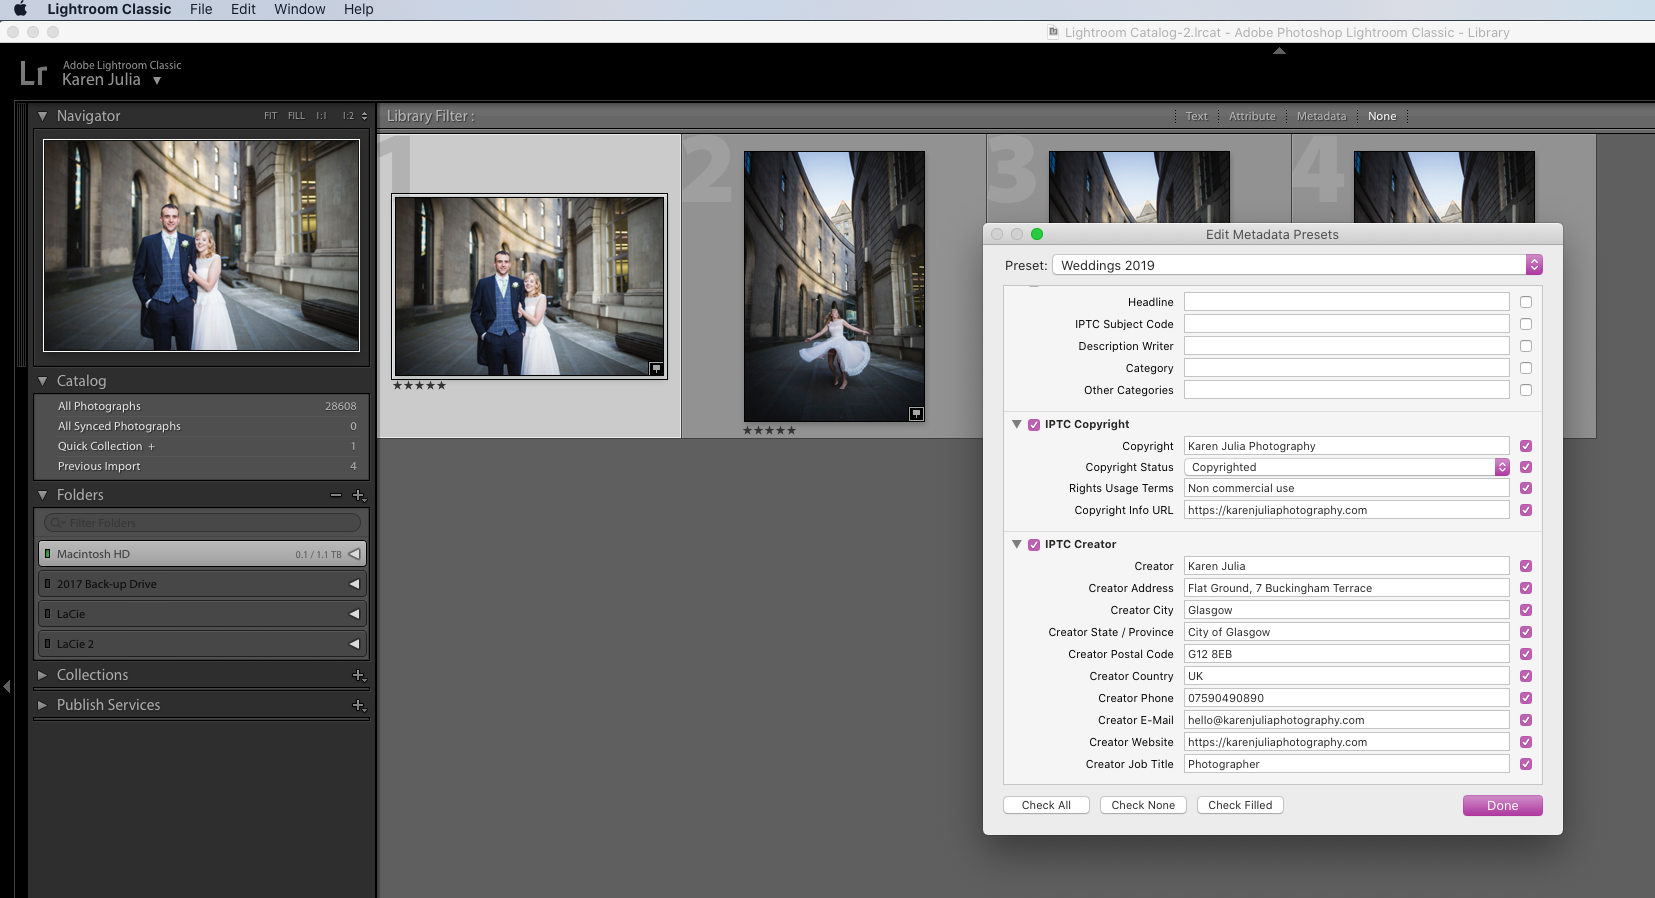 Screenshot showing Adobe Lightroom IPTC Image License Metadata boxes completed